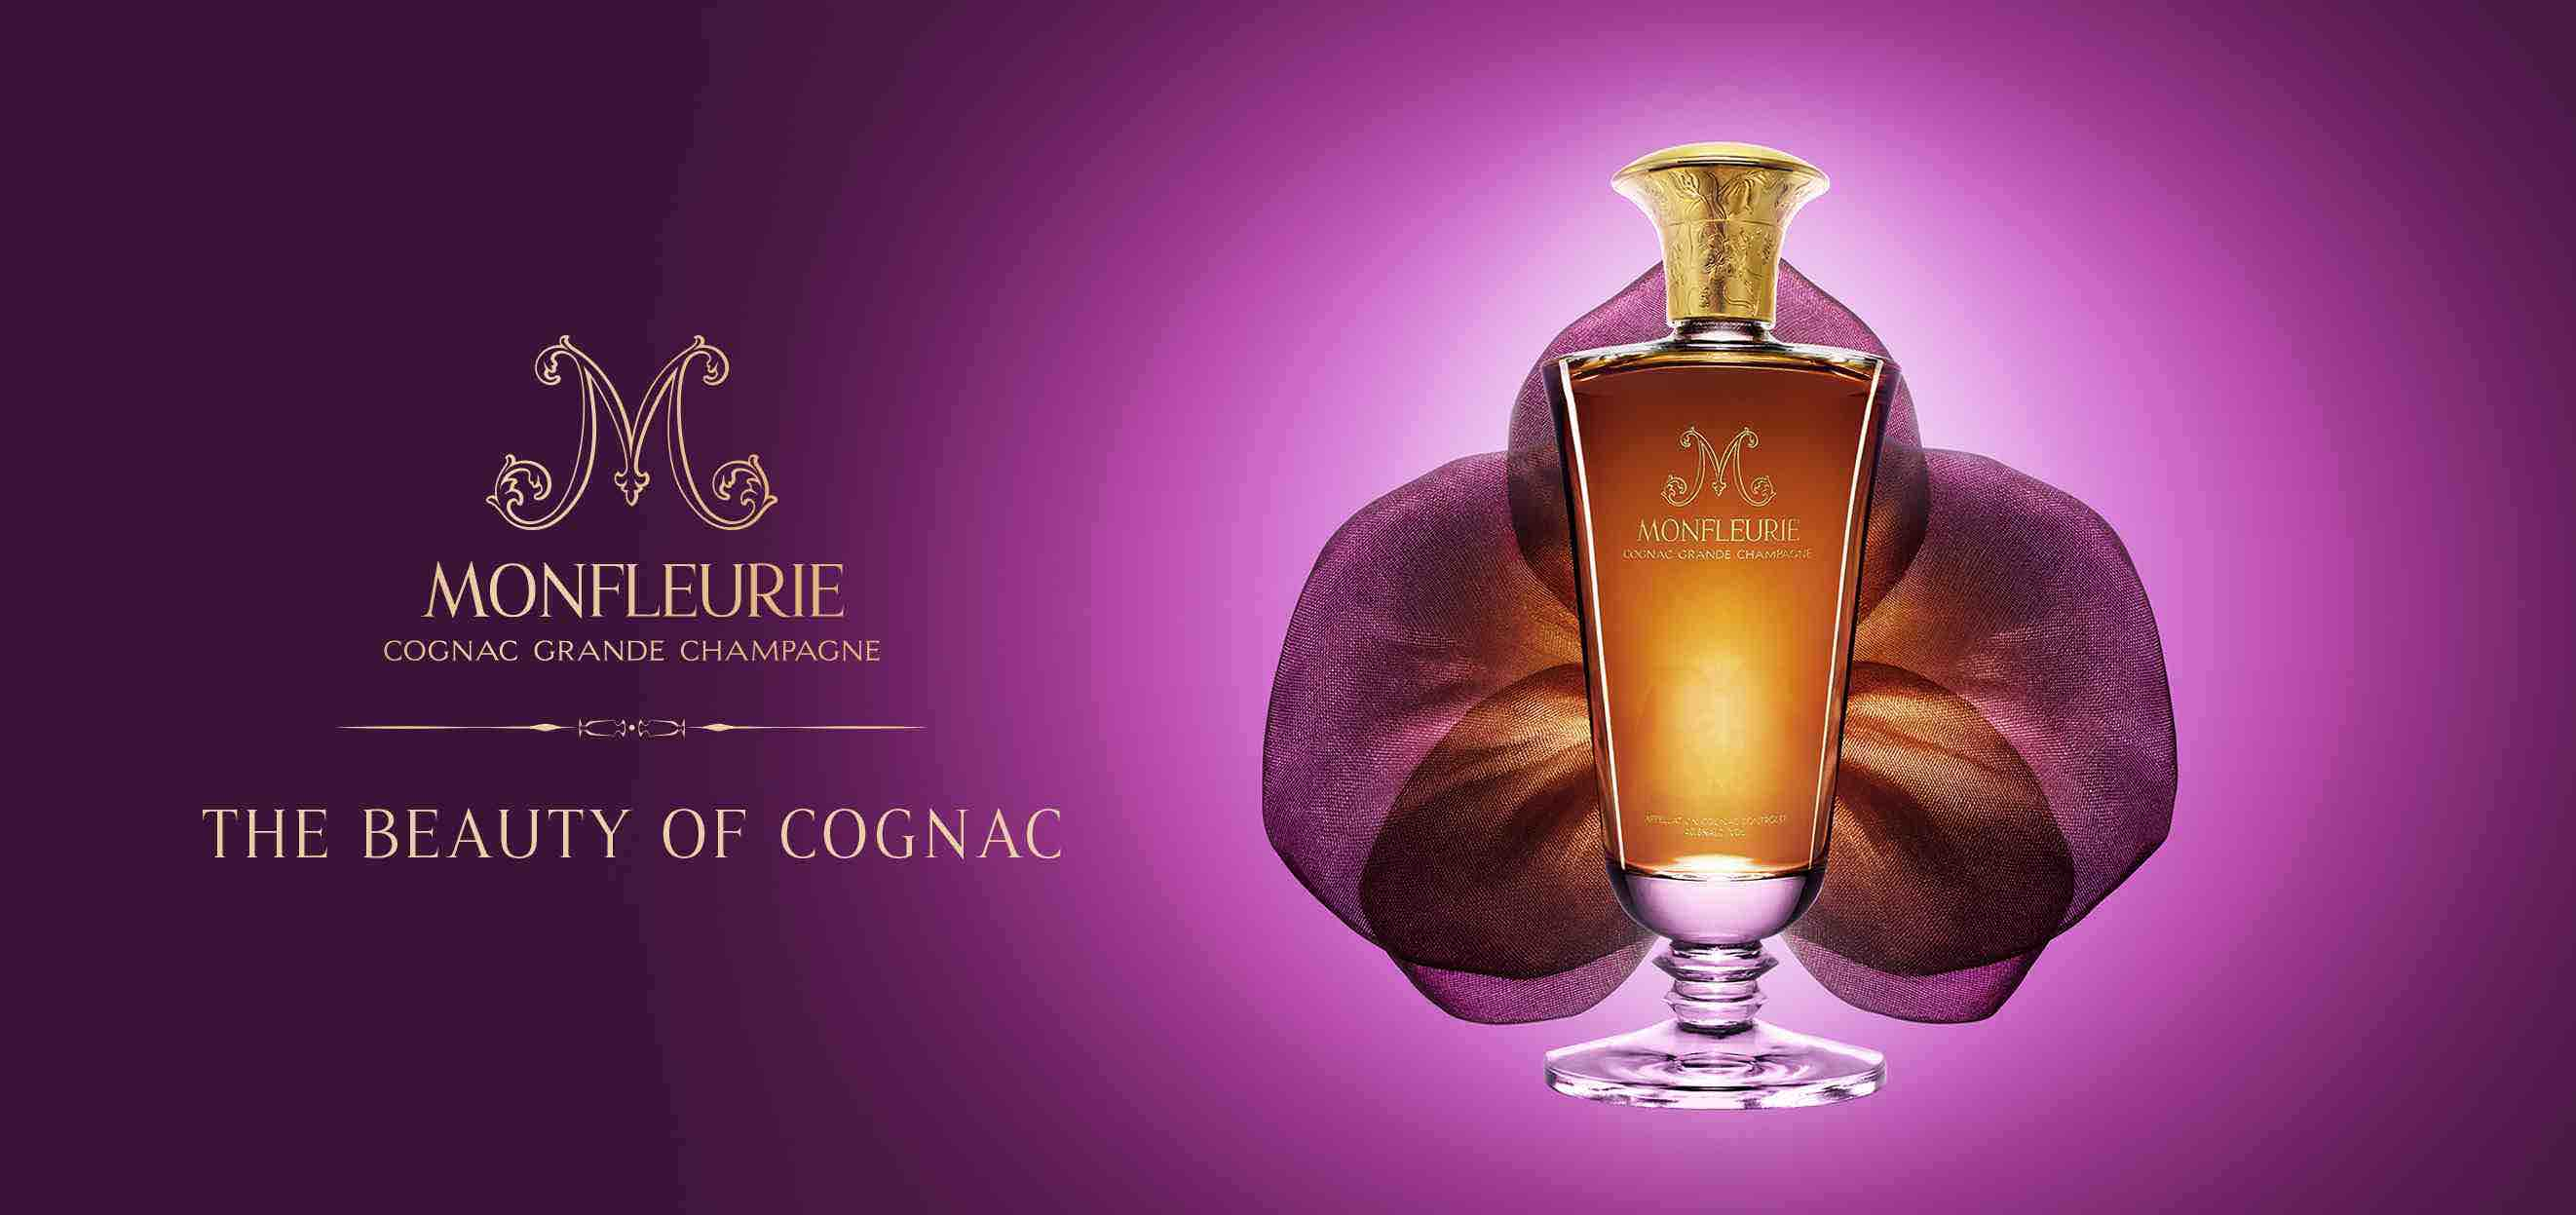 Introducing Monfleurie: The Cognac Women Have Been Waiting For